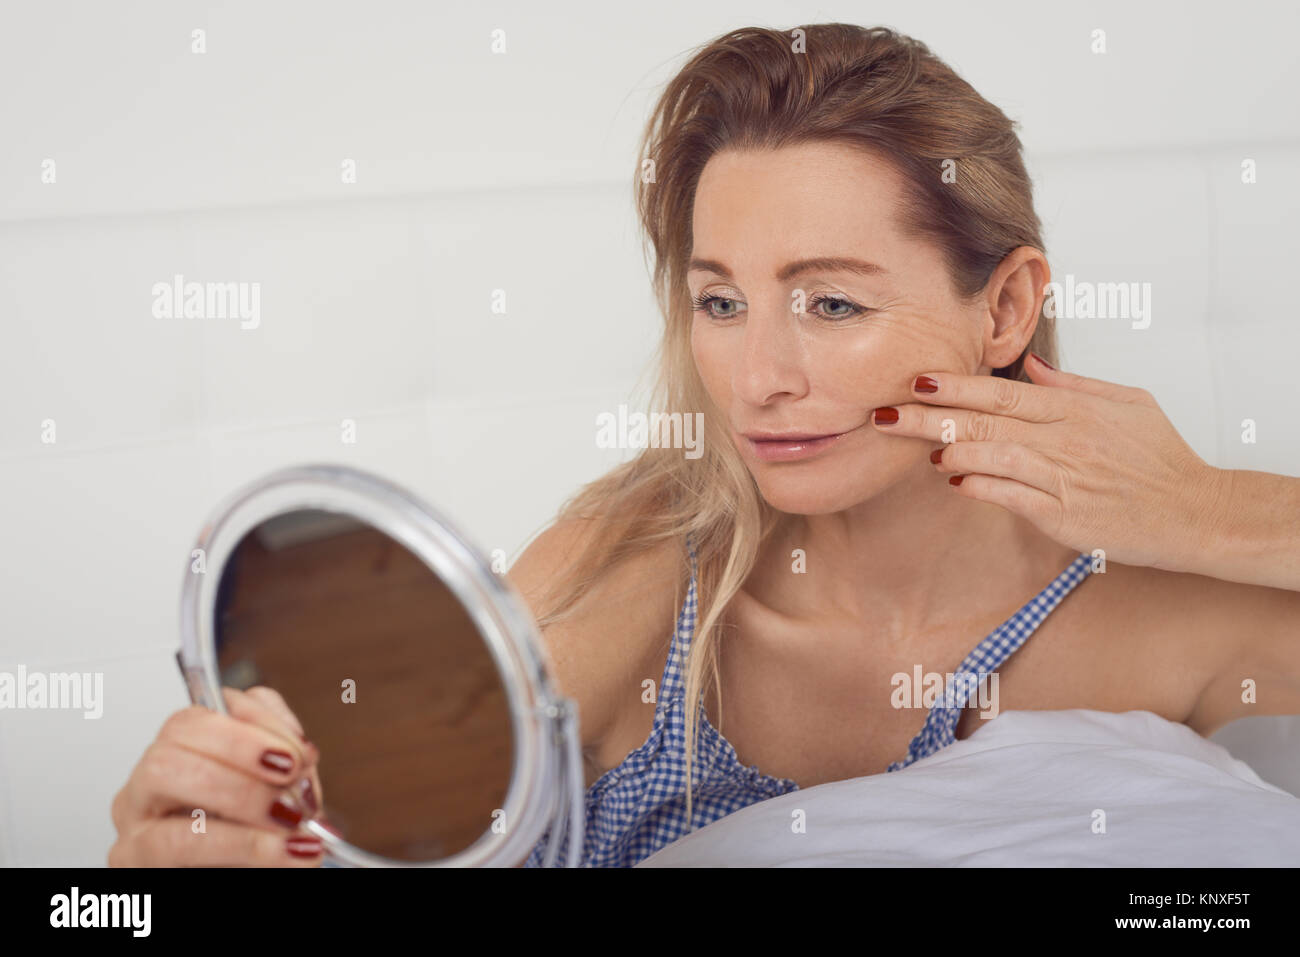 Portrait of a worried woman thinking of aging while looking in the mirror at her face and her facial wrinkles - Stock Image